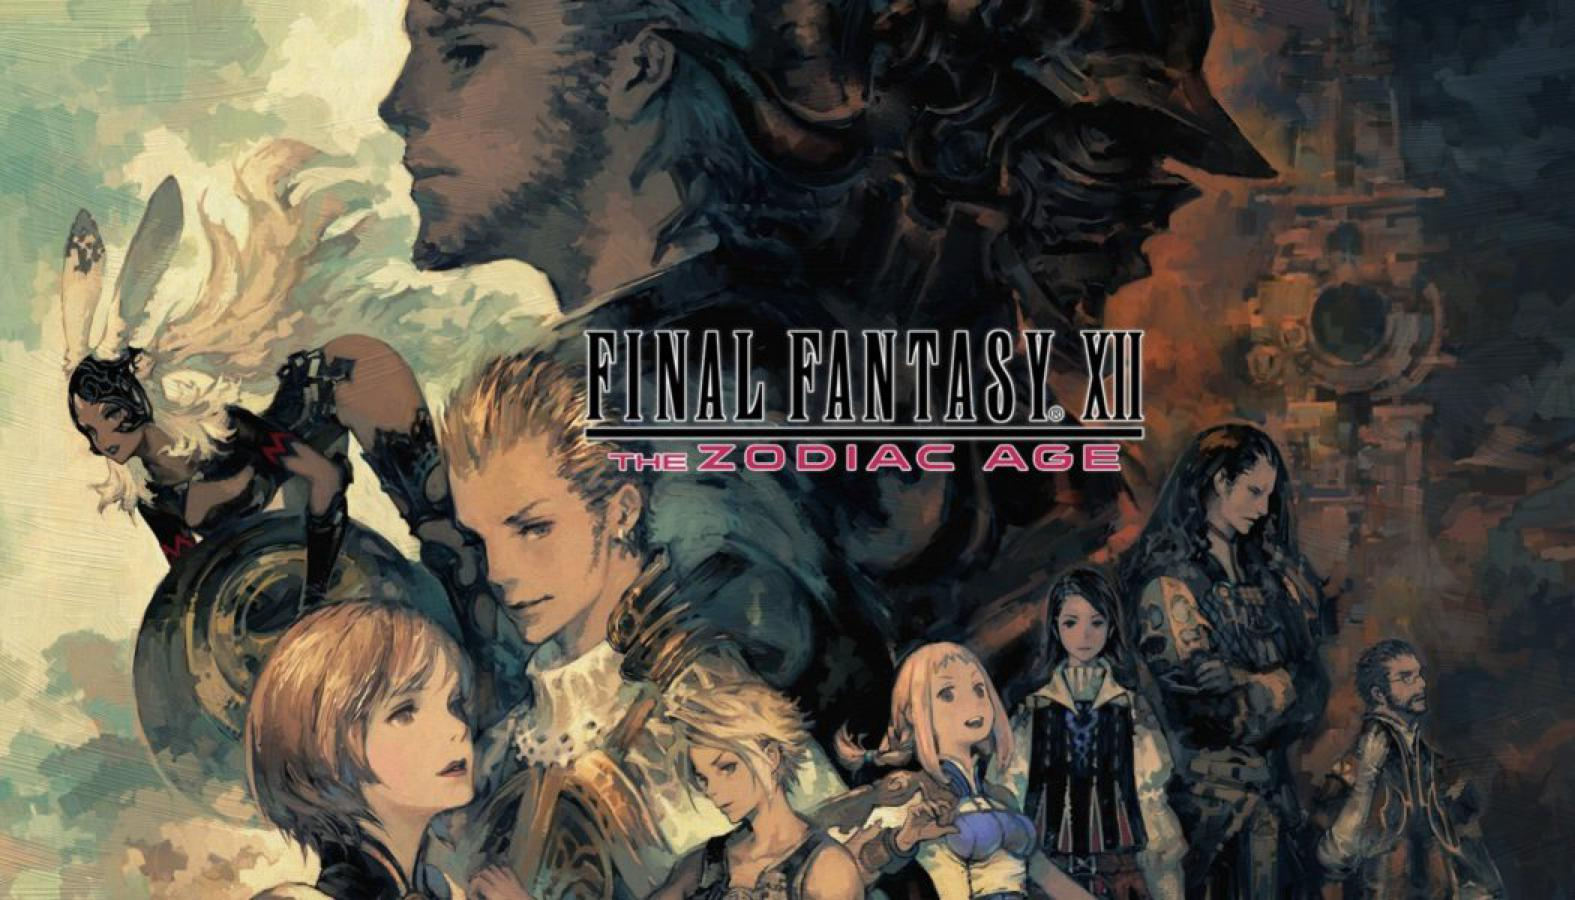 Final Fantasy XII - The Zodiac Age für die Playstation 4